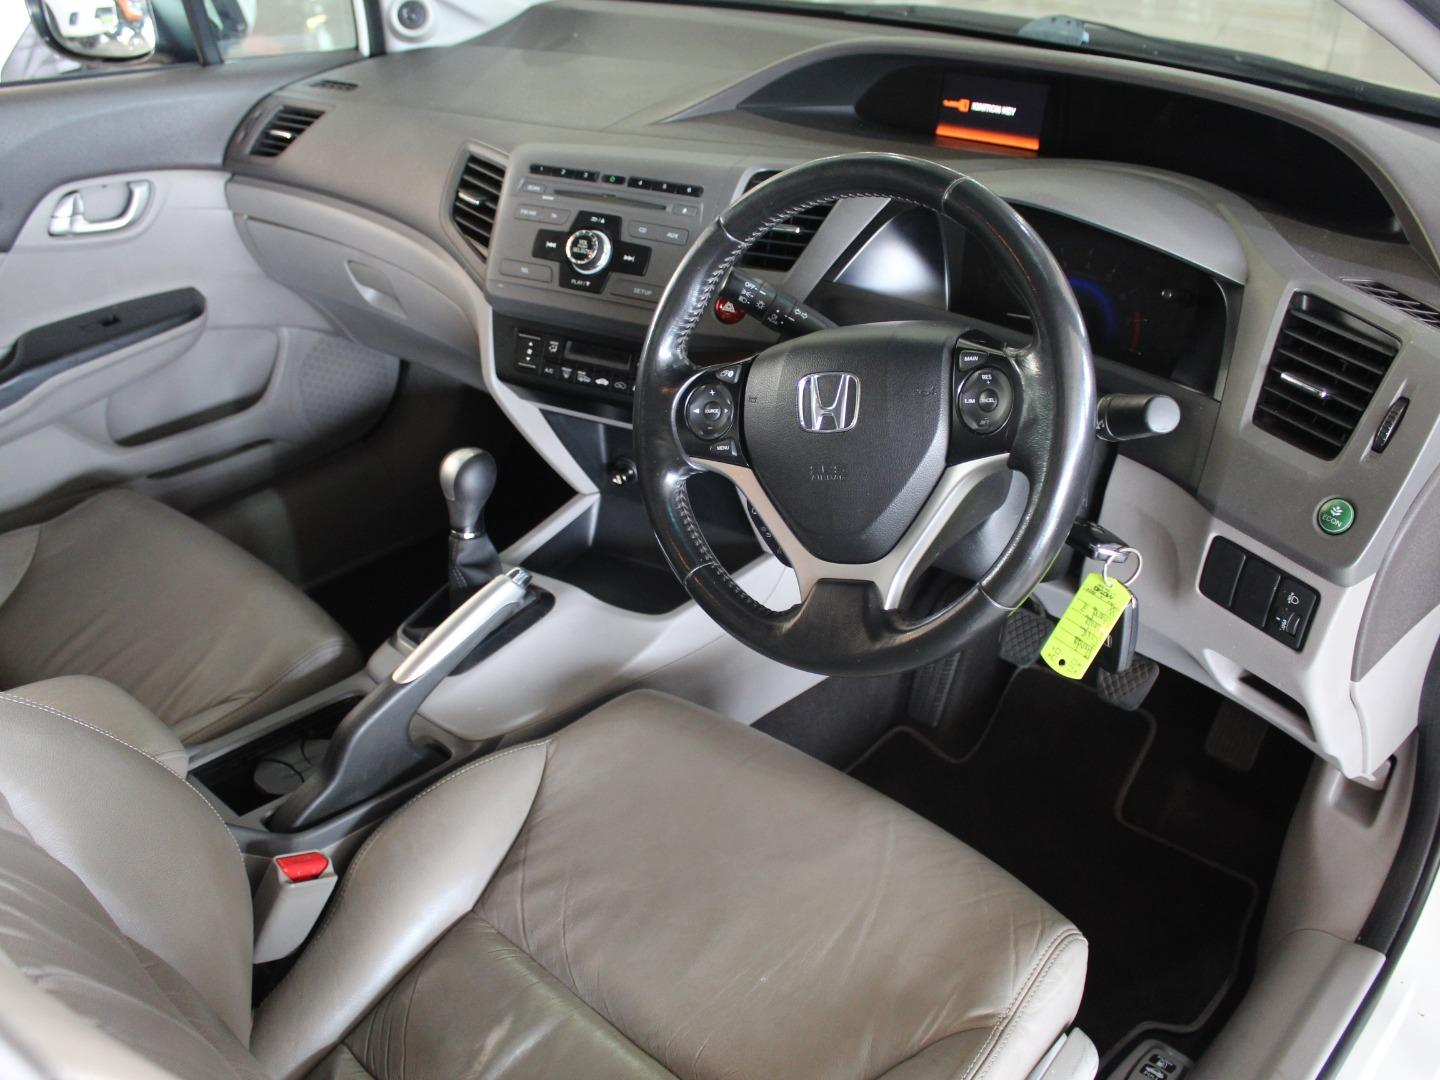 2012 Honda Jazz 1.4- Picture 3